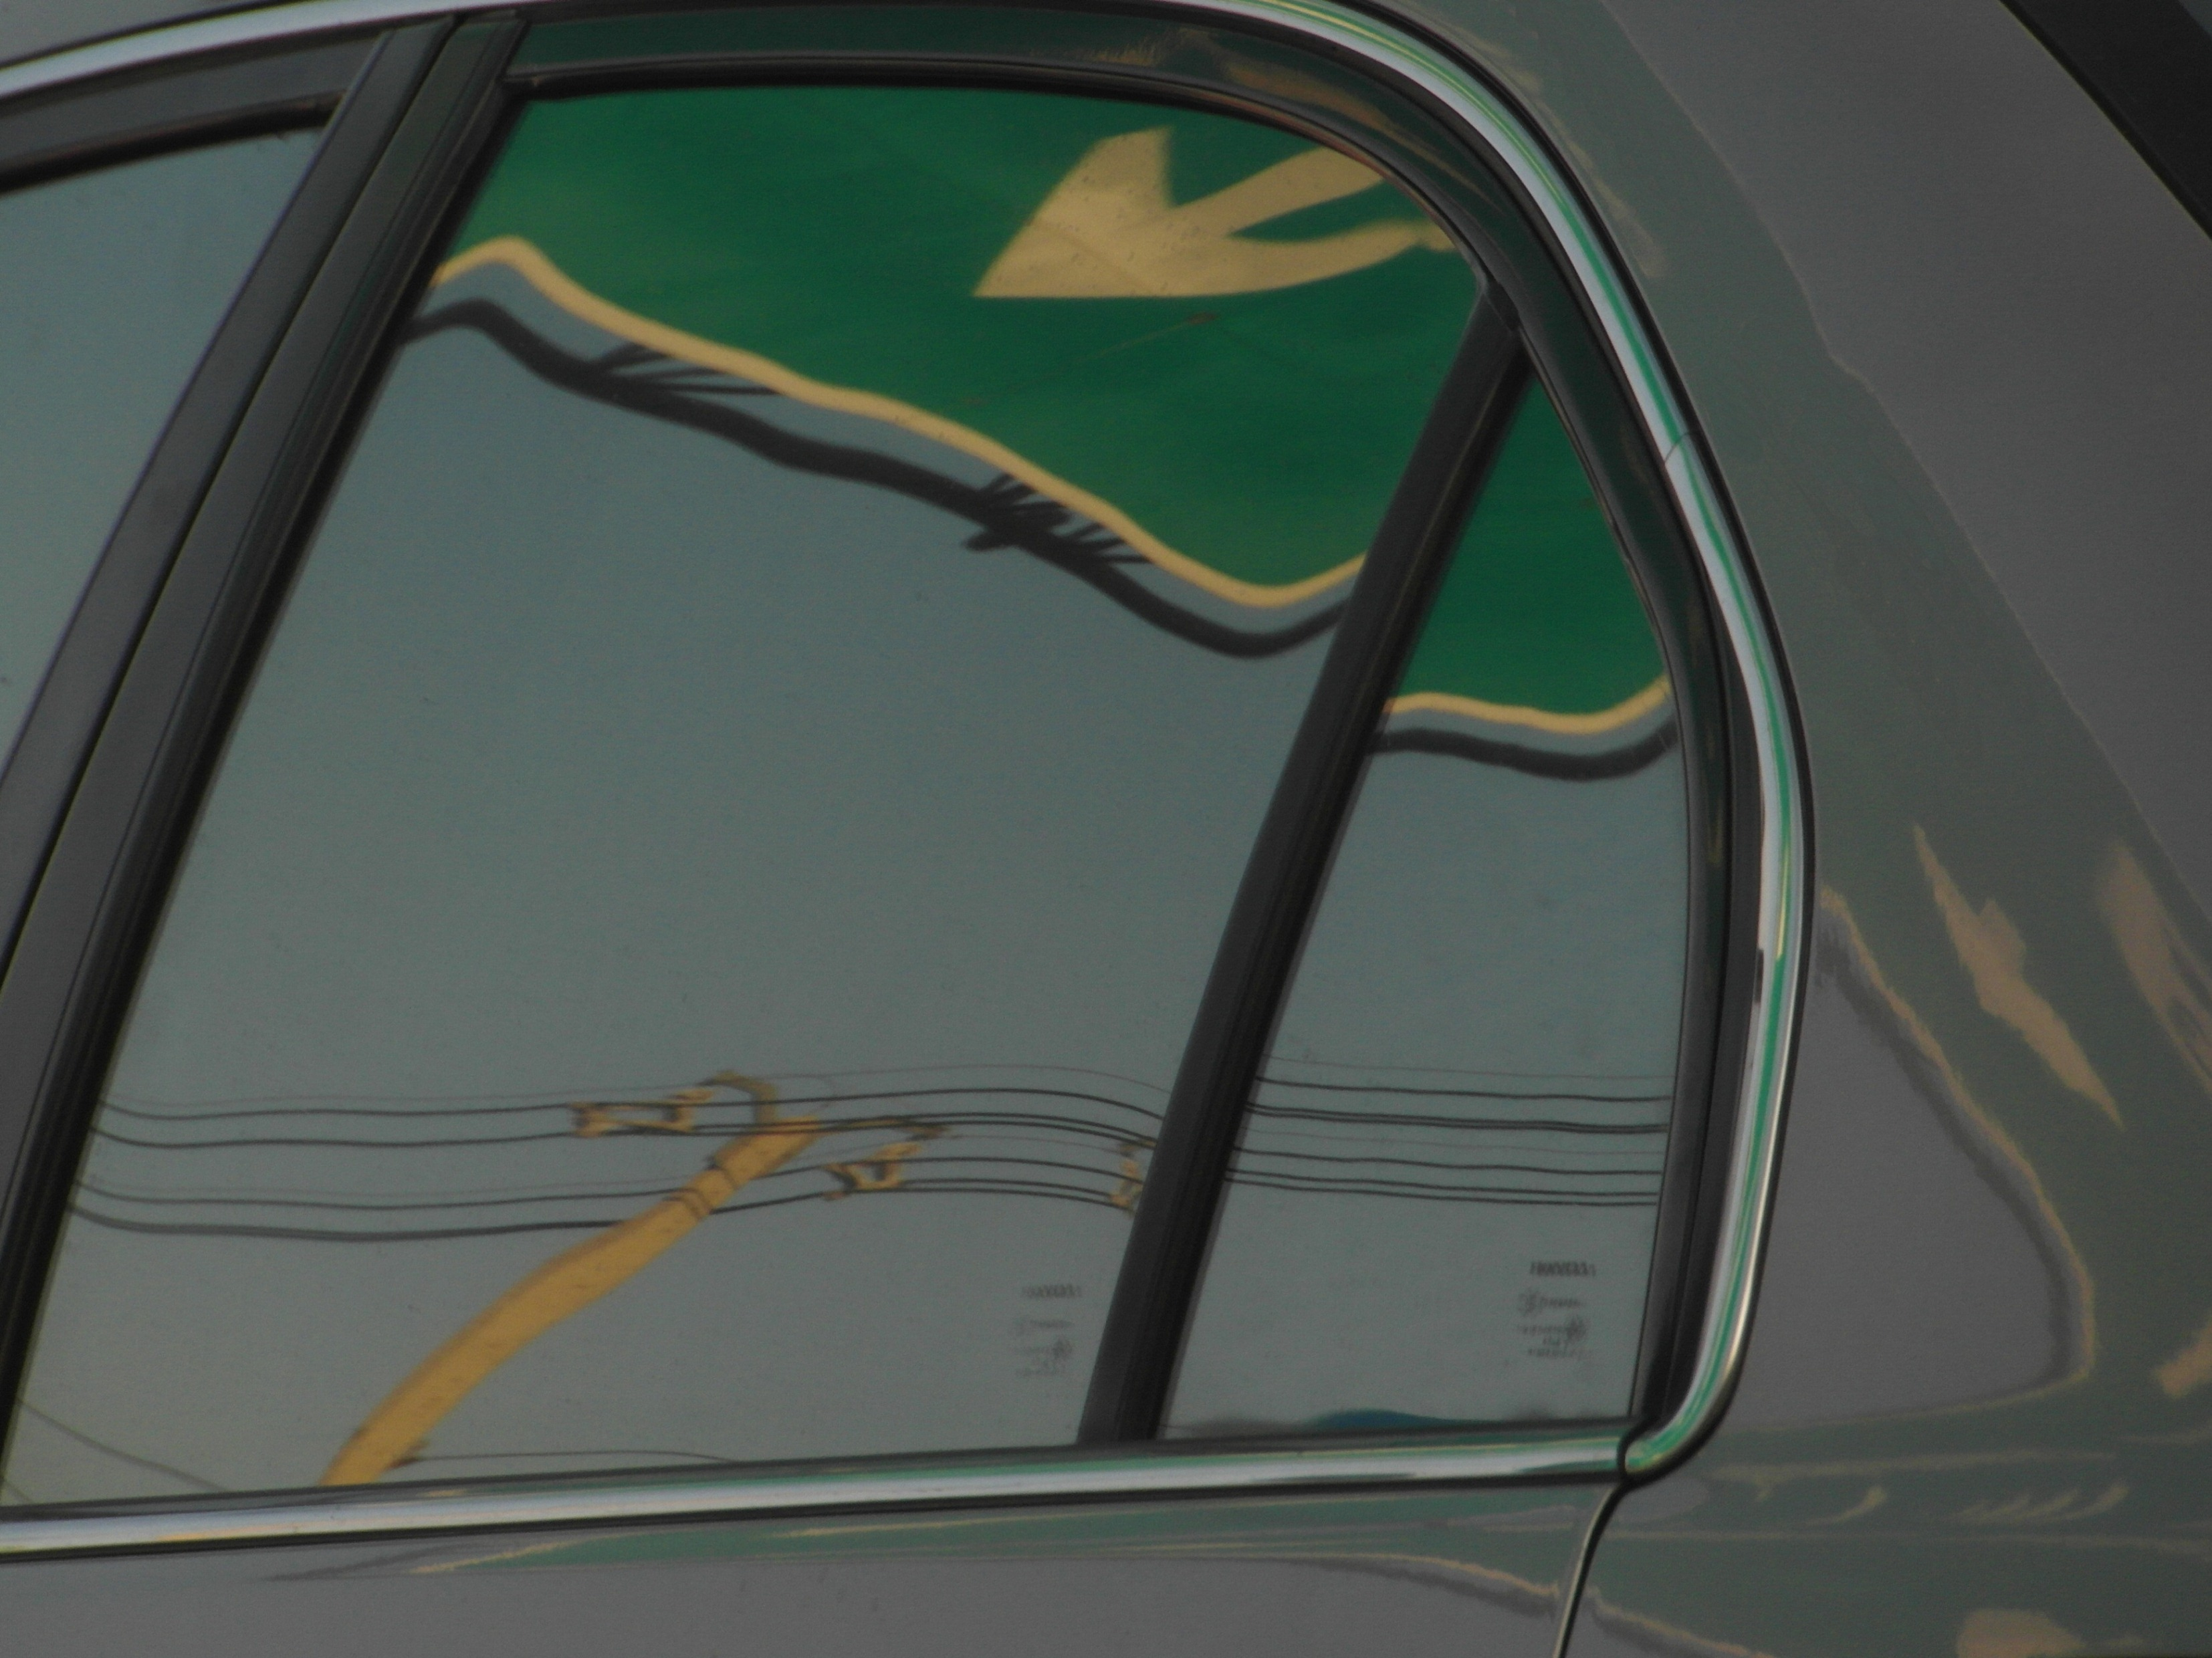 Road sign abstract reflection photo